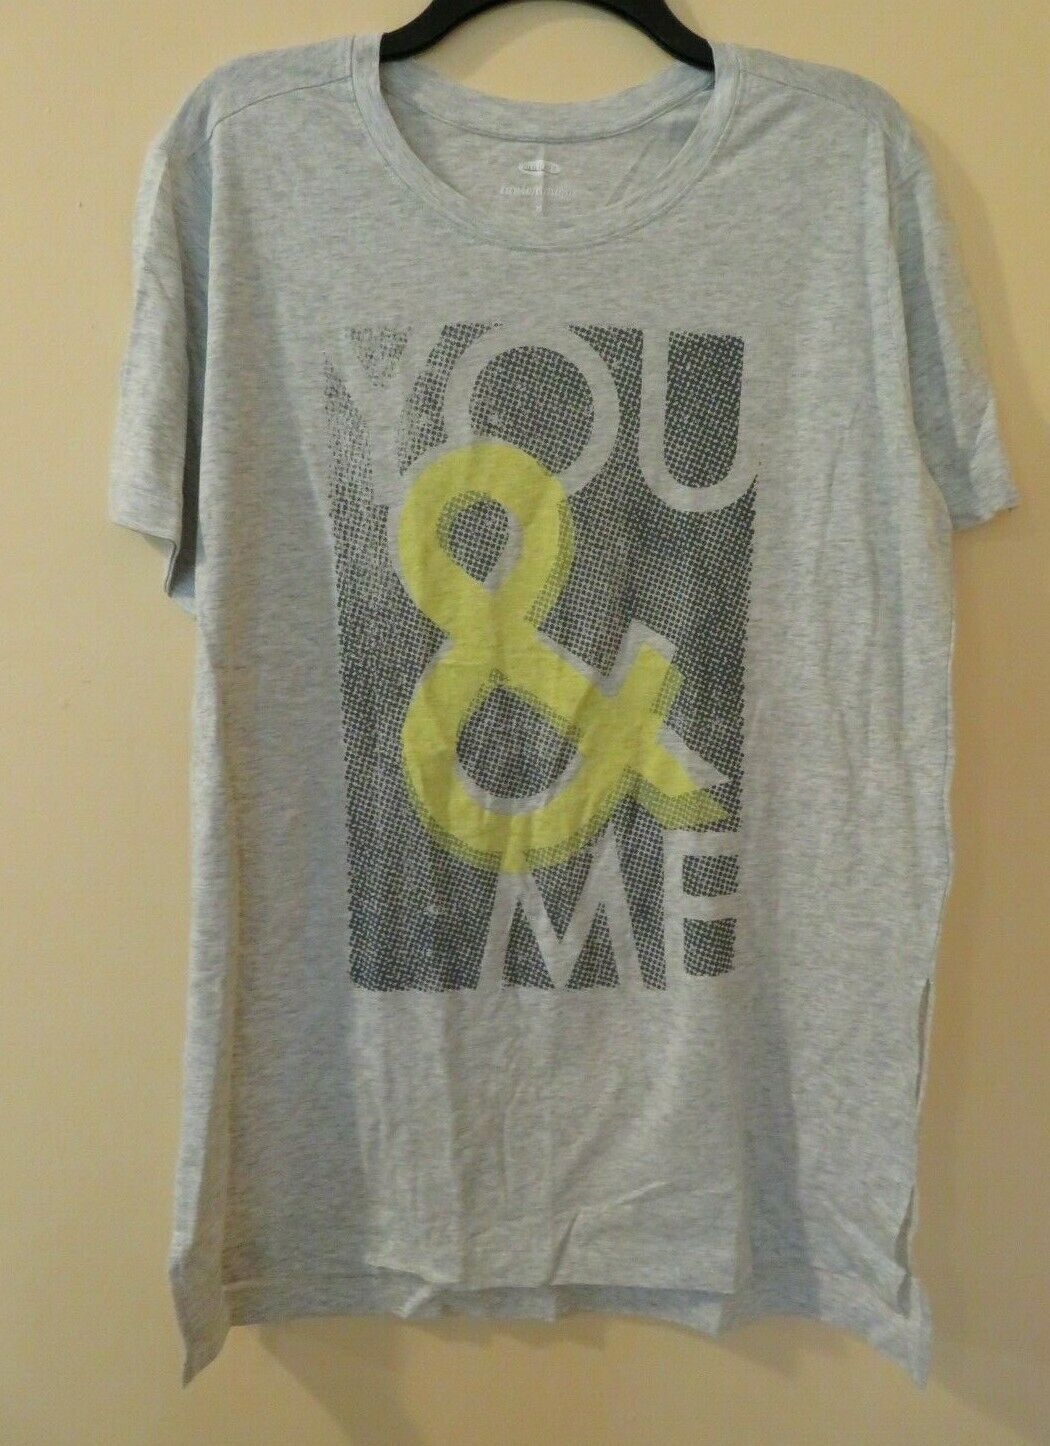 Old Navy Women's T-Shirt Top Size M Tunic Gray Yellow 100% Cotton NEW You & Me